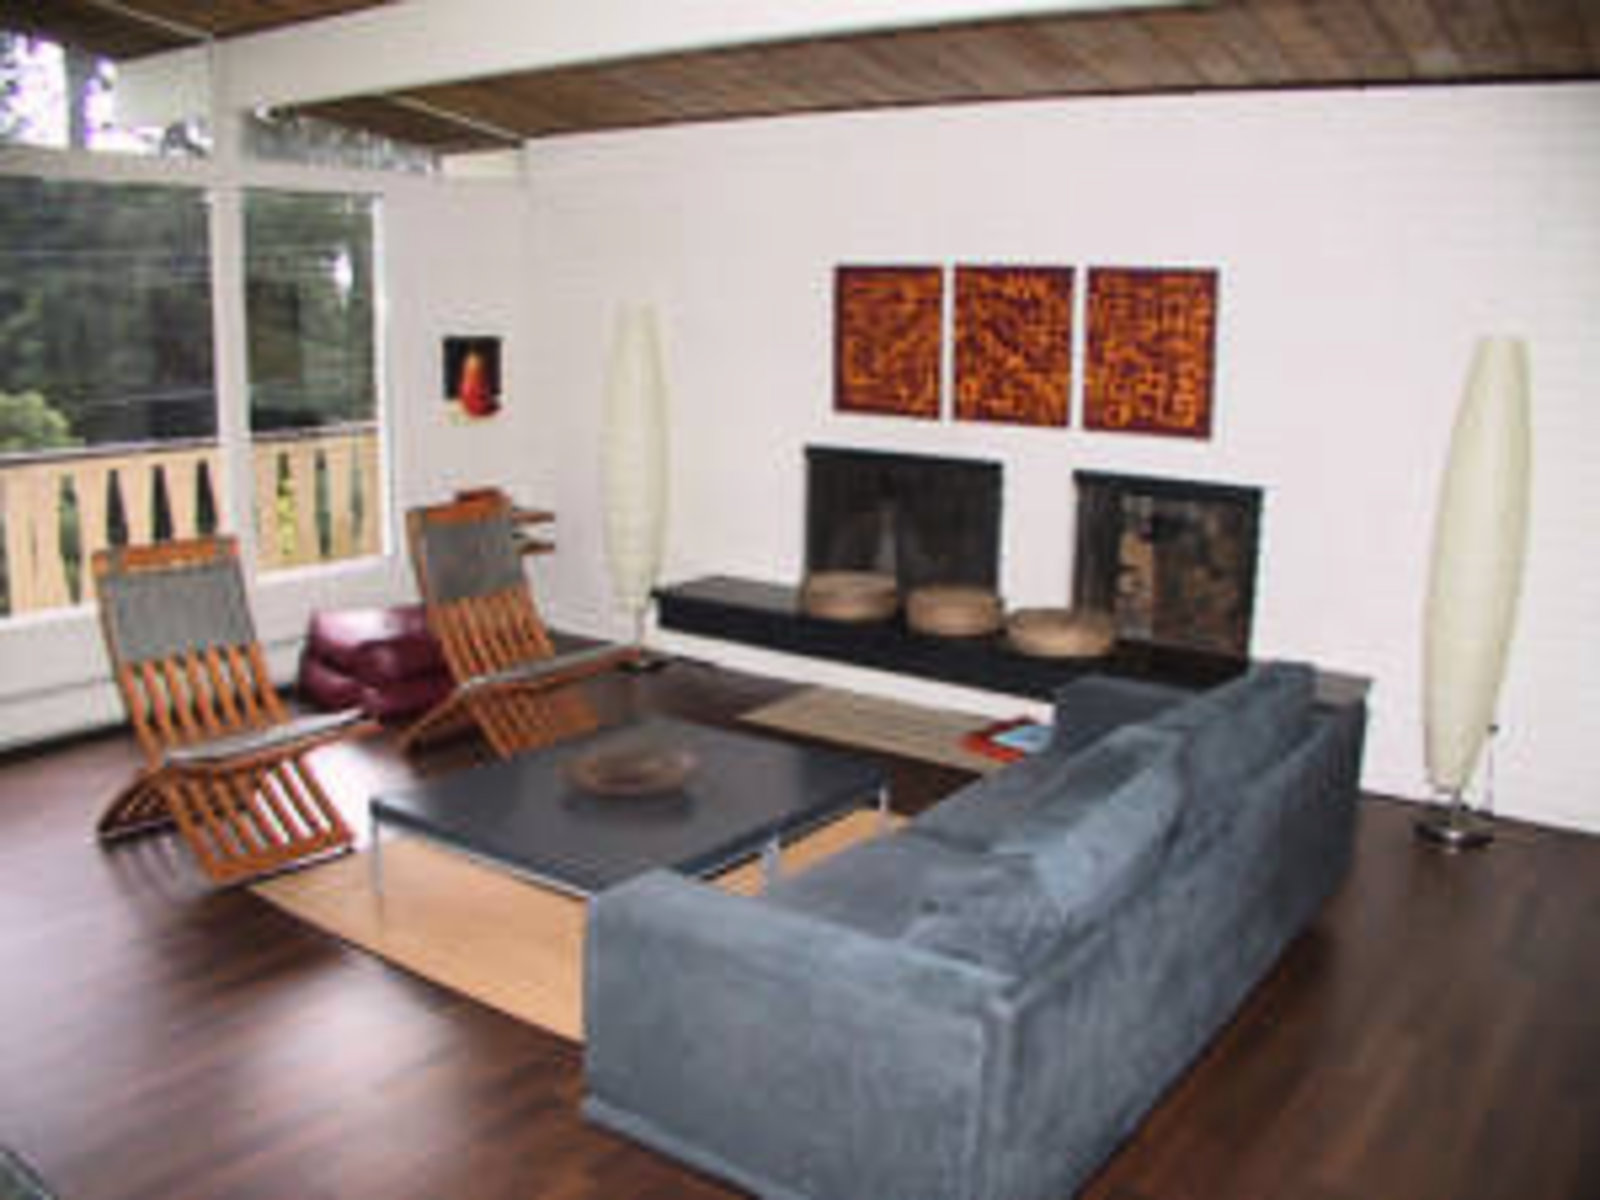 Living Room Vaulted Ceilings, hardwood floors, wood burning fireplace, floor to ceiling windows